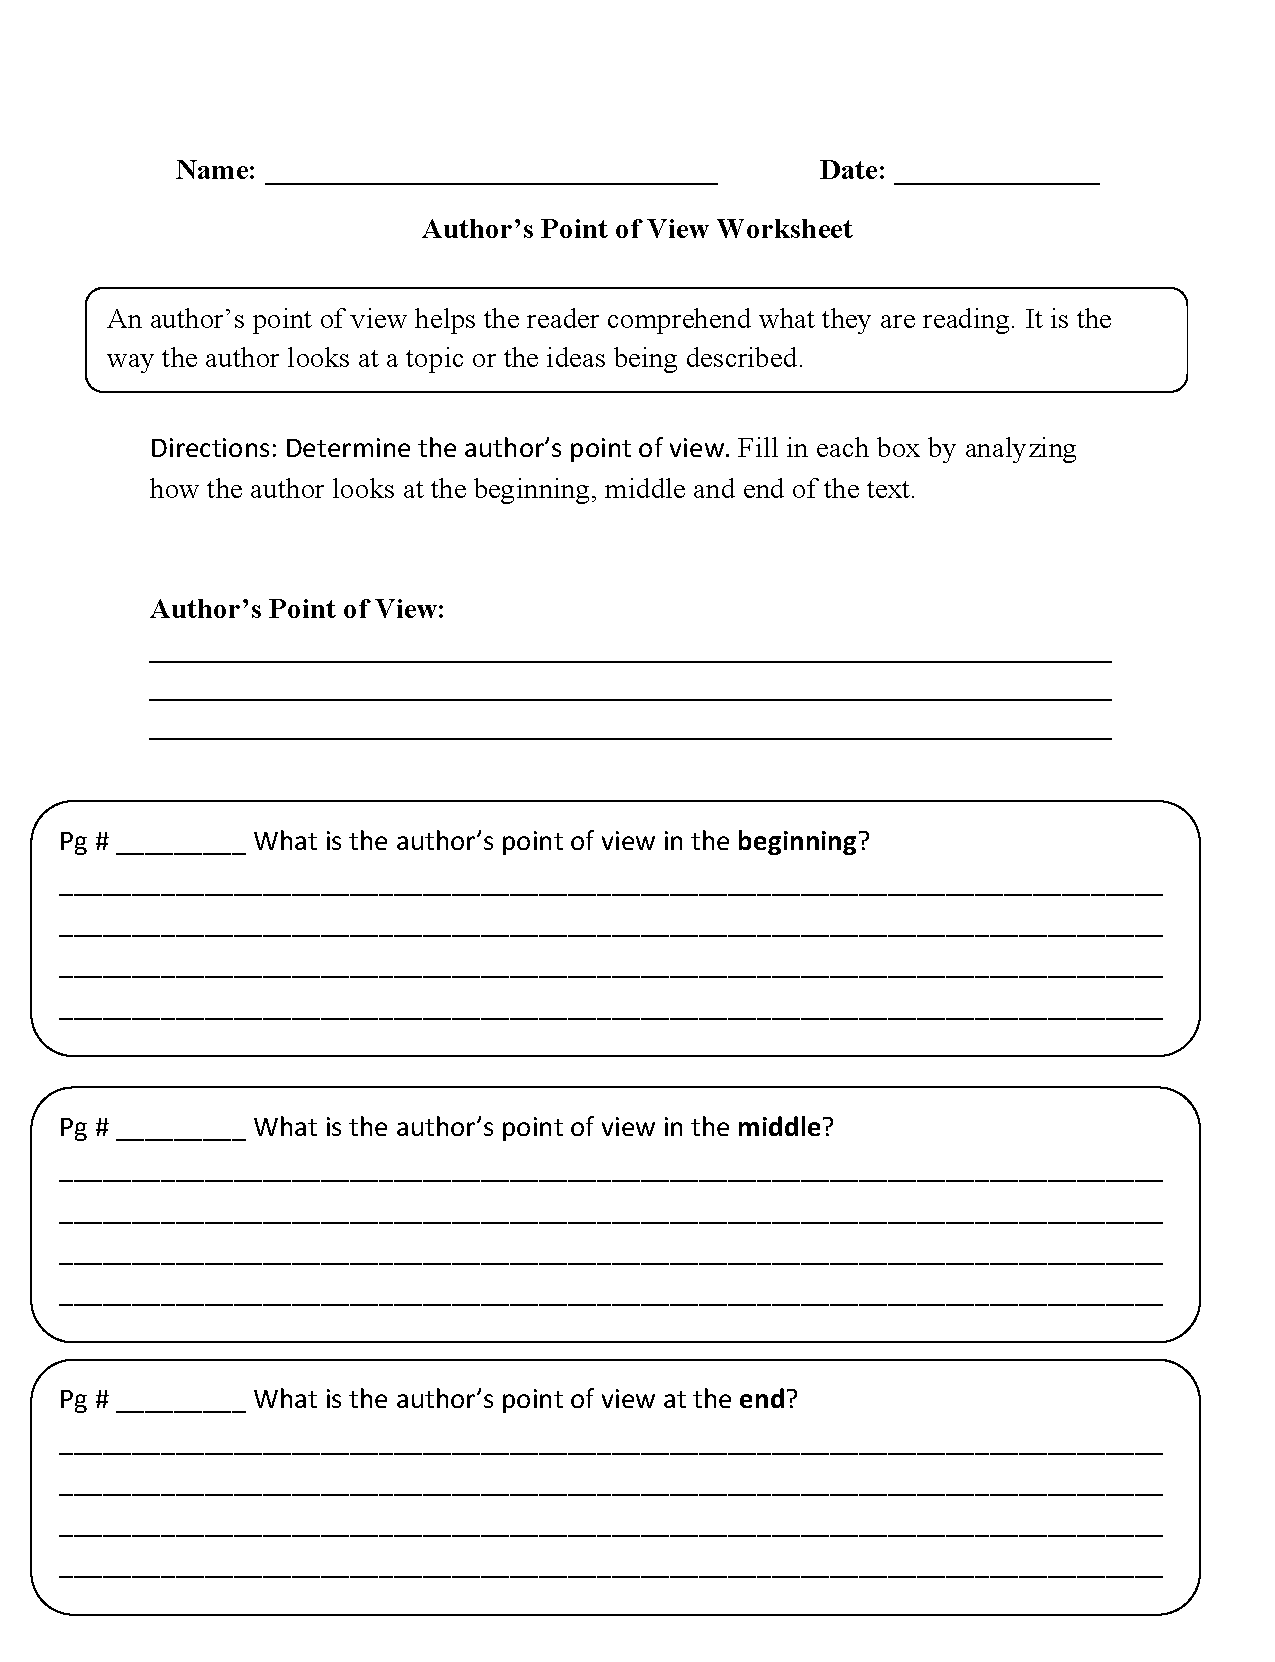 Weirdmailus  Unique Englishlinxcom  Point Of View Worksheets With Heavenly Point Of View Worksheets With Alluring Schedule  Worksheet Also Identifying Character Traits Worksheet In Addition Smart Change Plan Worksheet And Body System Worksheets As Well As Igneous Rock Worksheet Additionally The Iliad Worksheets From Englishlinxcom With Weirdmailus  Heavenly Englishlinxcom  Point Of View Worksheets With Alluring Point Of View Worksheets And Unique Schedule  Worksheet Also Identifying Character Traits Worksheet In Addition Smart Change Plan Worksheet From Englishlinxcom